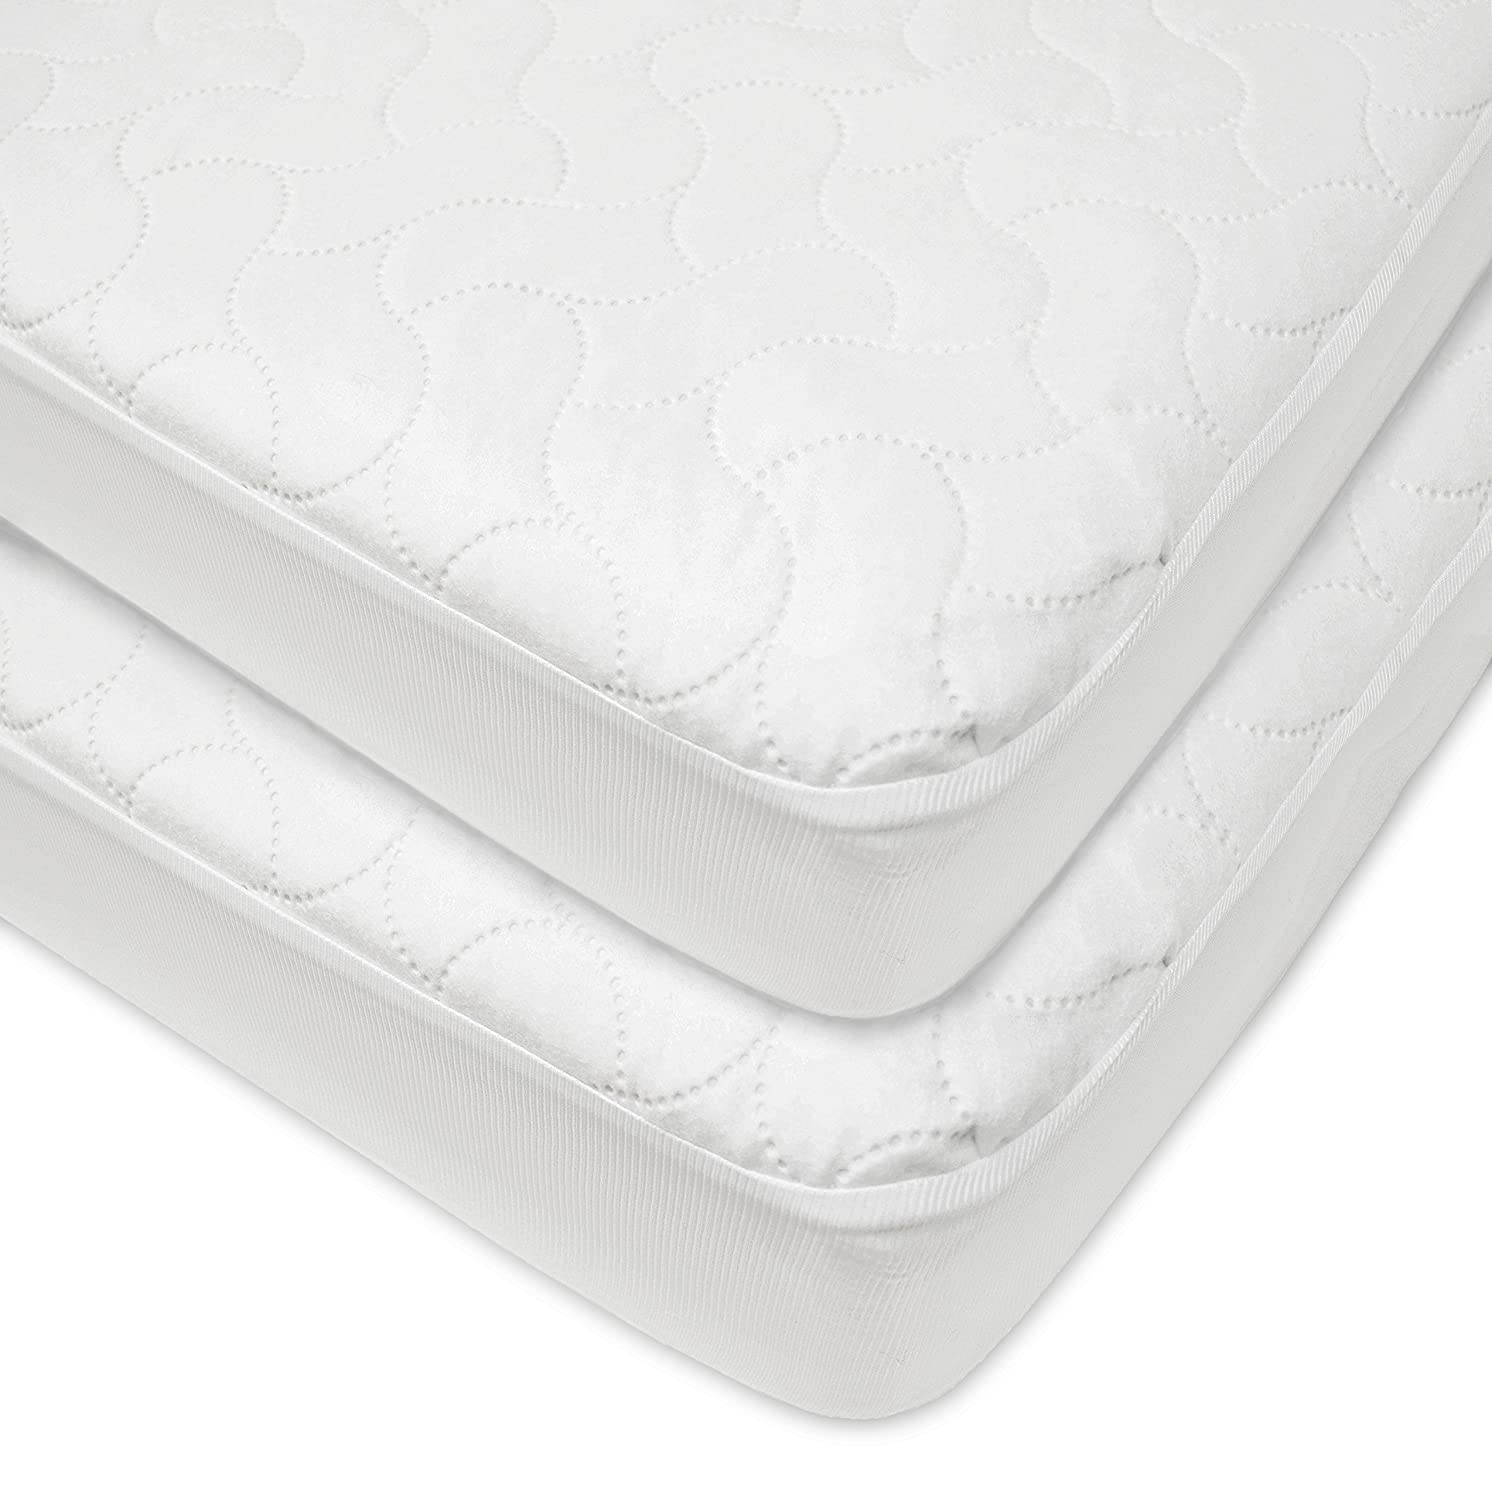 American Baby Company Waterproof Fitted Quilted Crib and Toddler Protective Pad Cover, (2 Pack)White 22863-WT